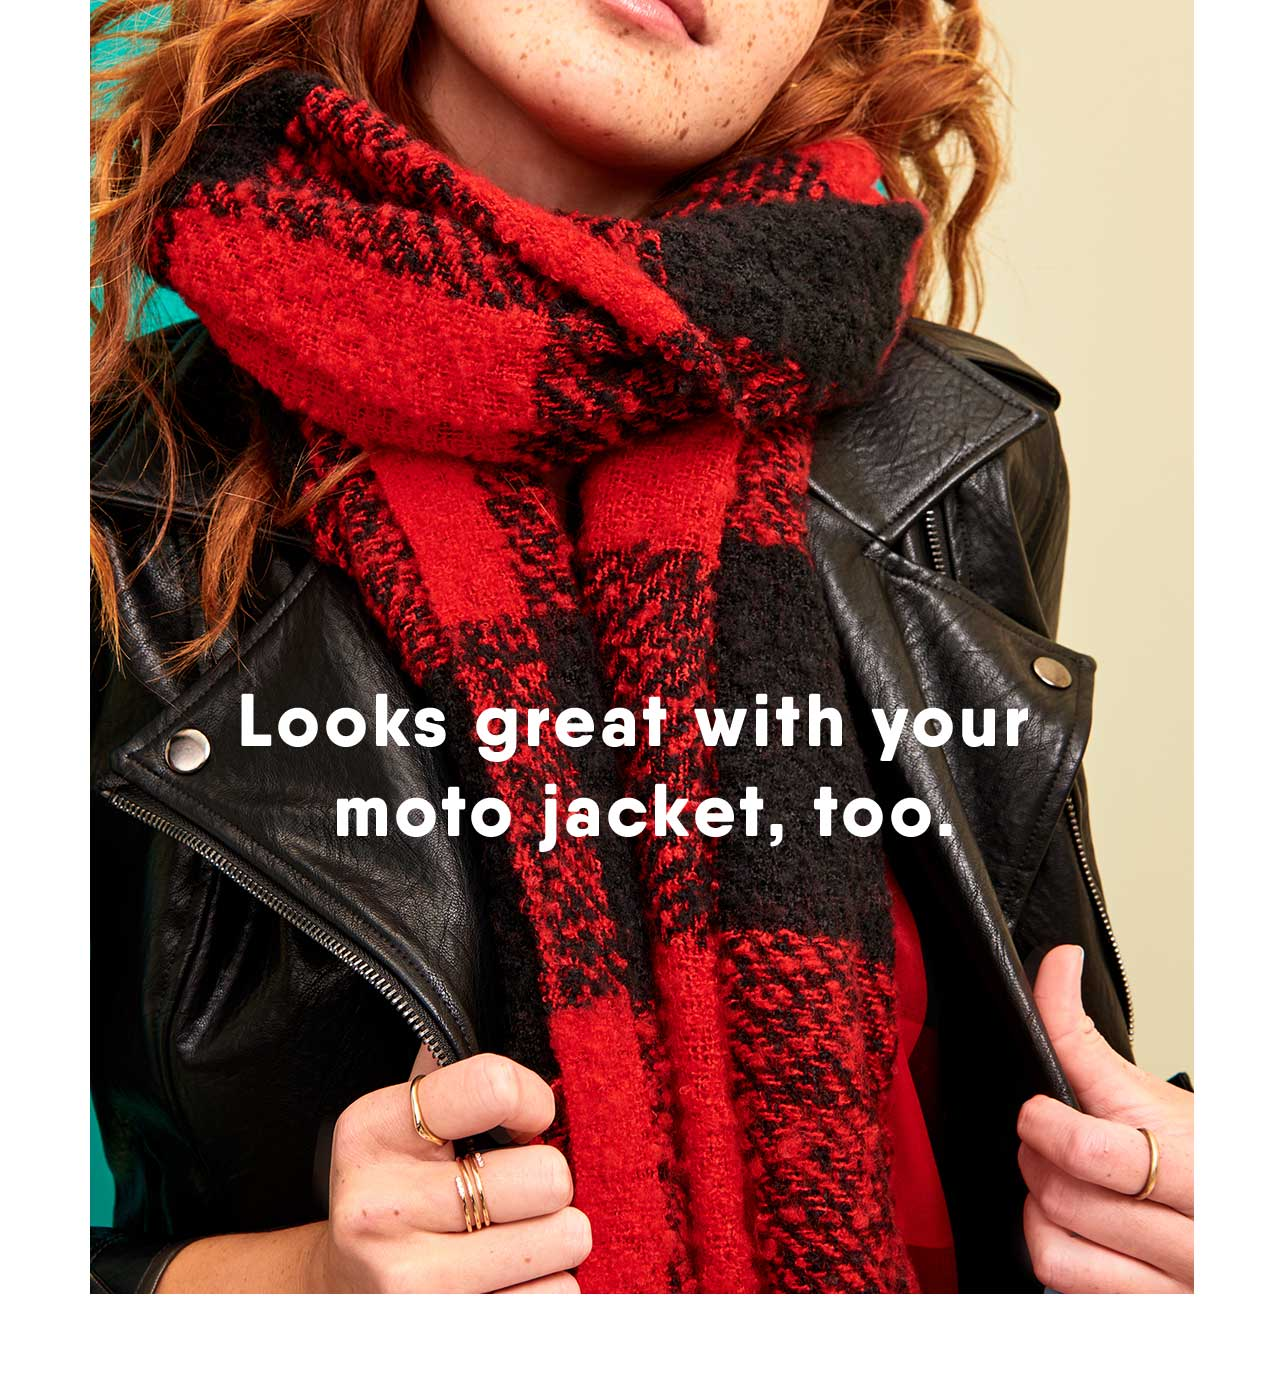 Looks great with your moto jacket, too.